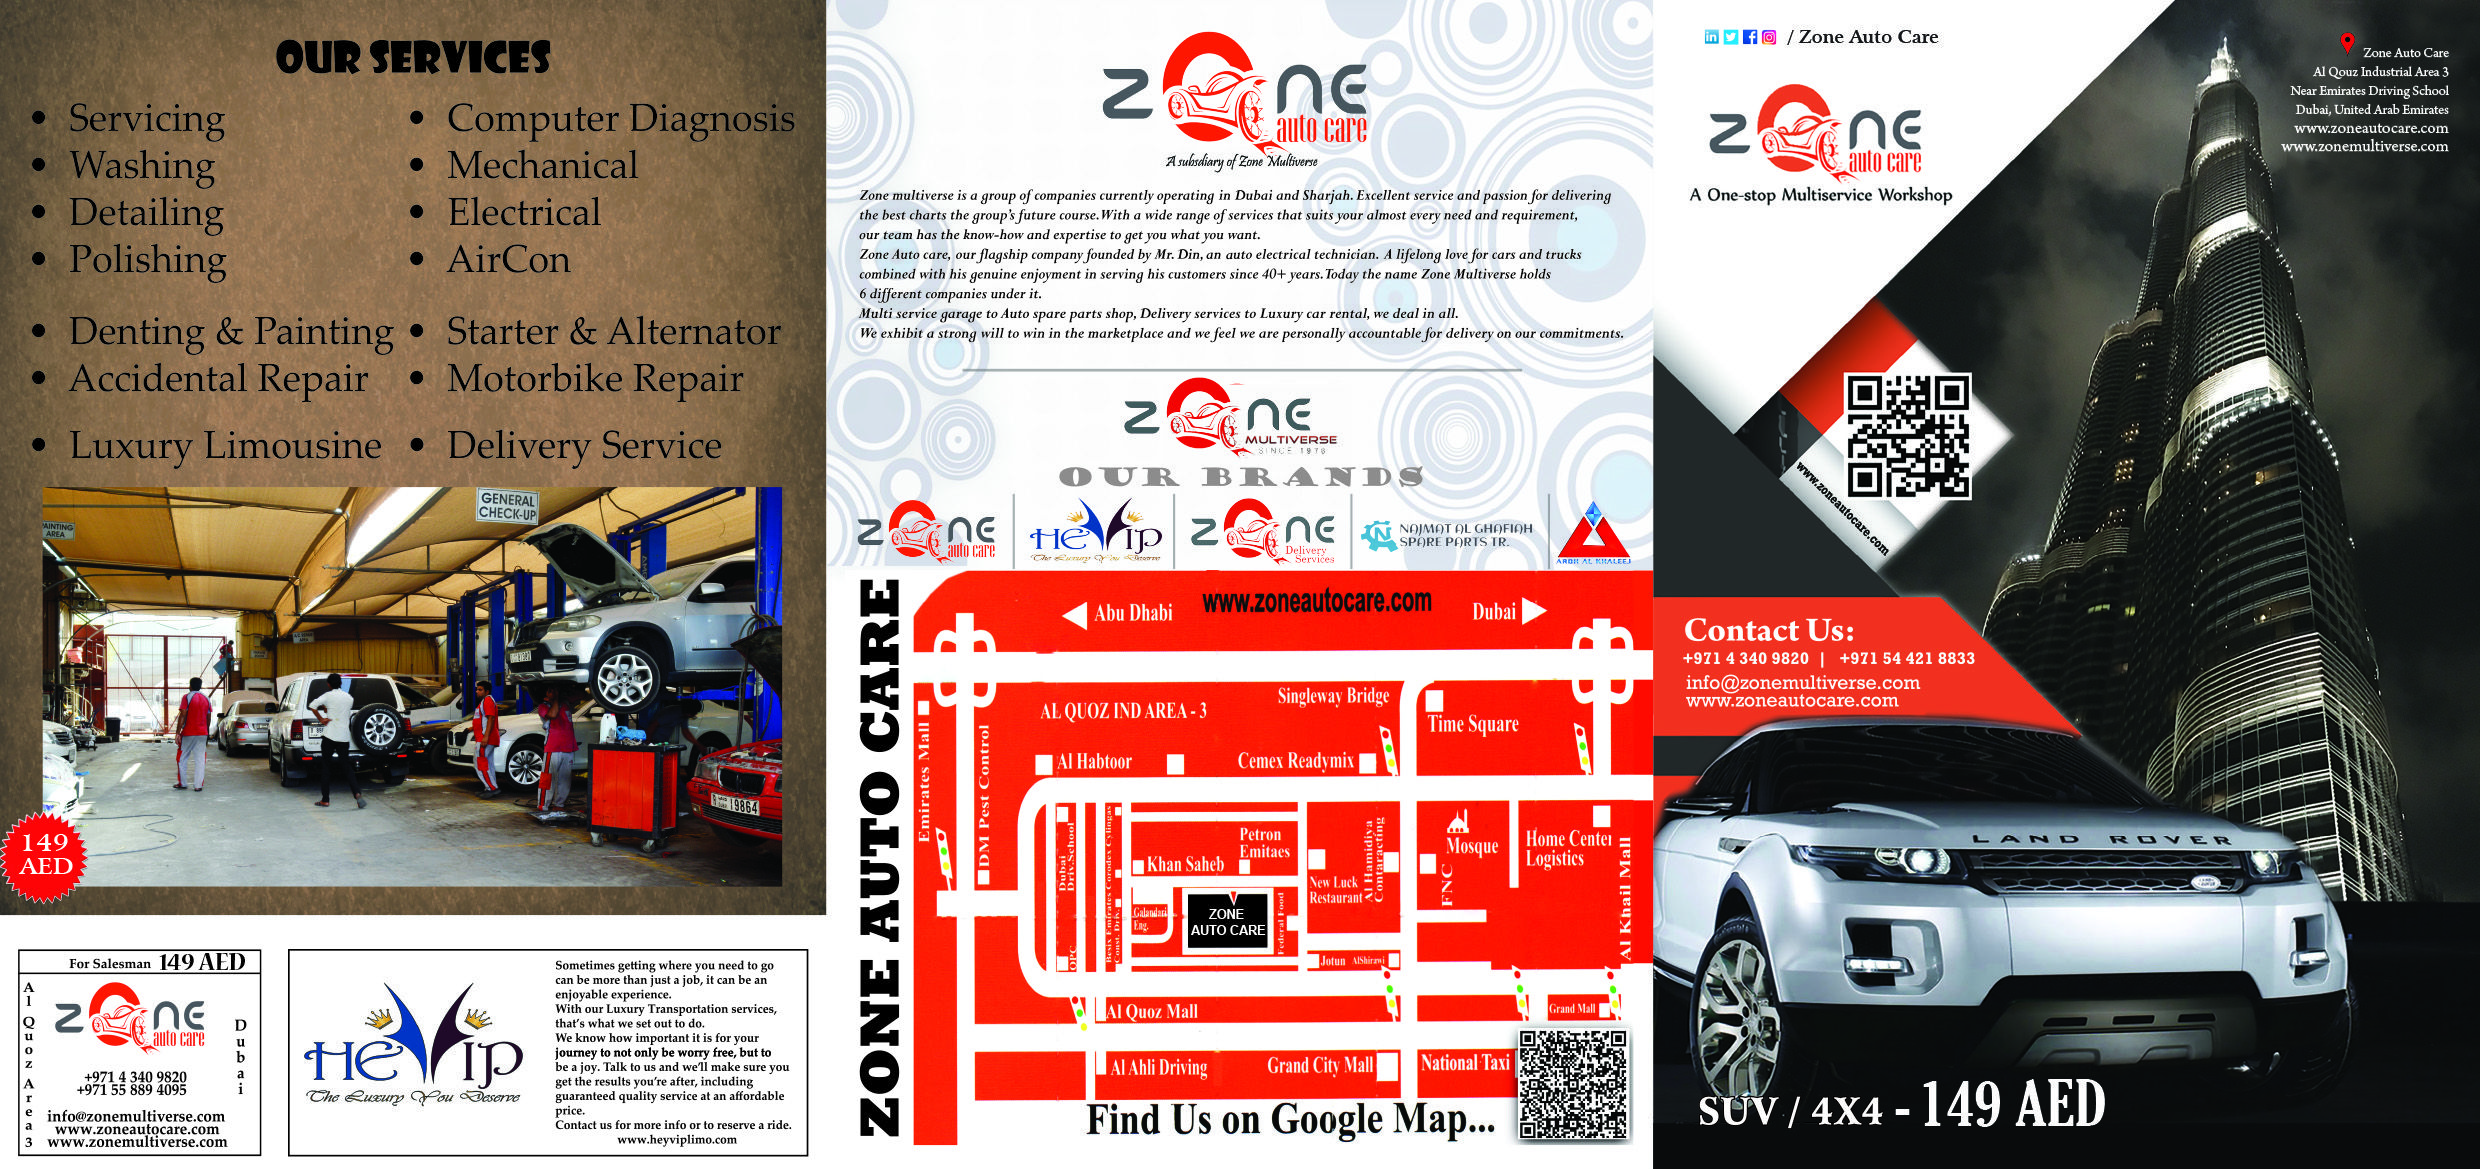 Zone Auto Care Car Service Center Has The Best Car Service Deals In